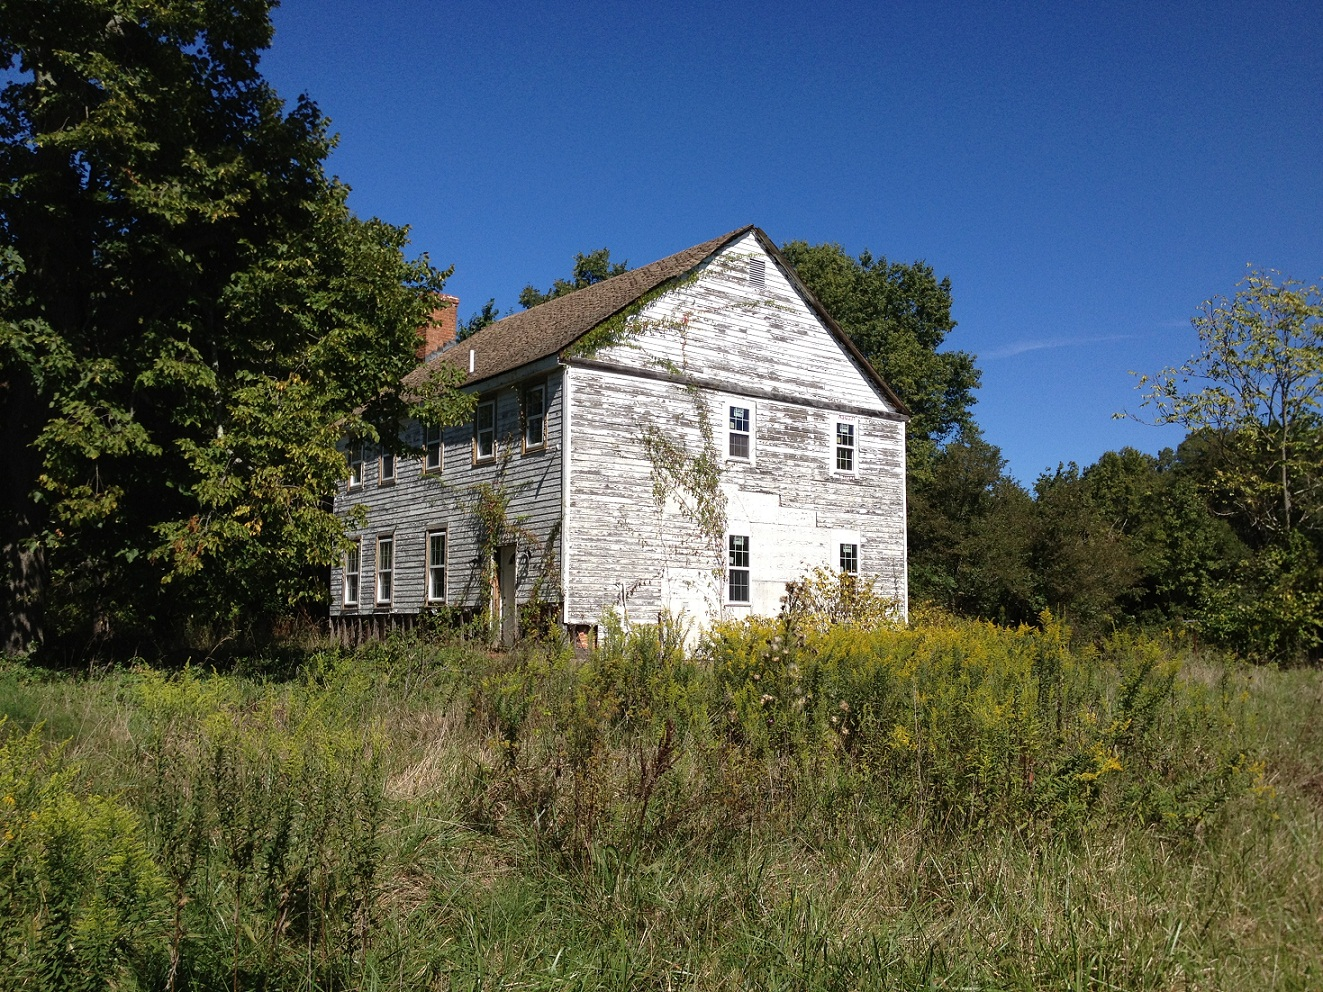 Charles county wanderings boothiebarn - House on the hill 2012 ...